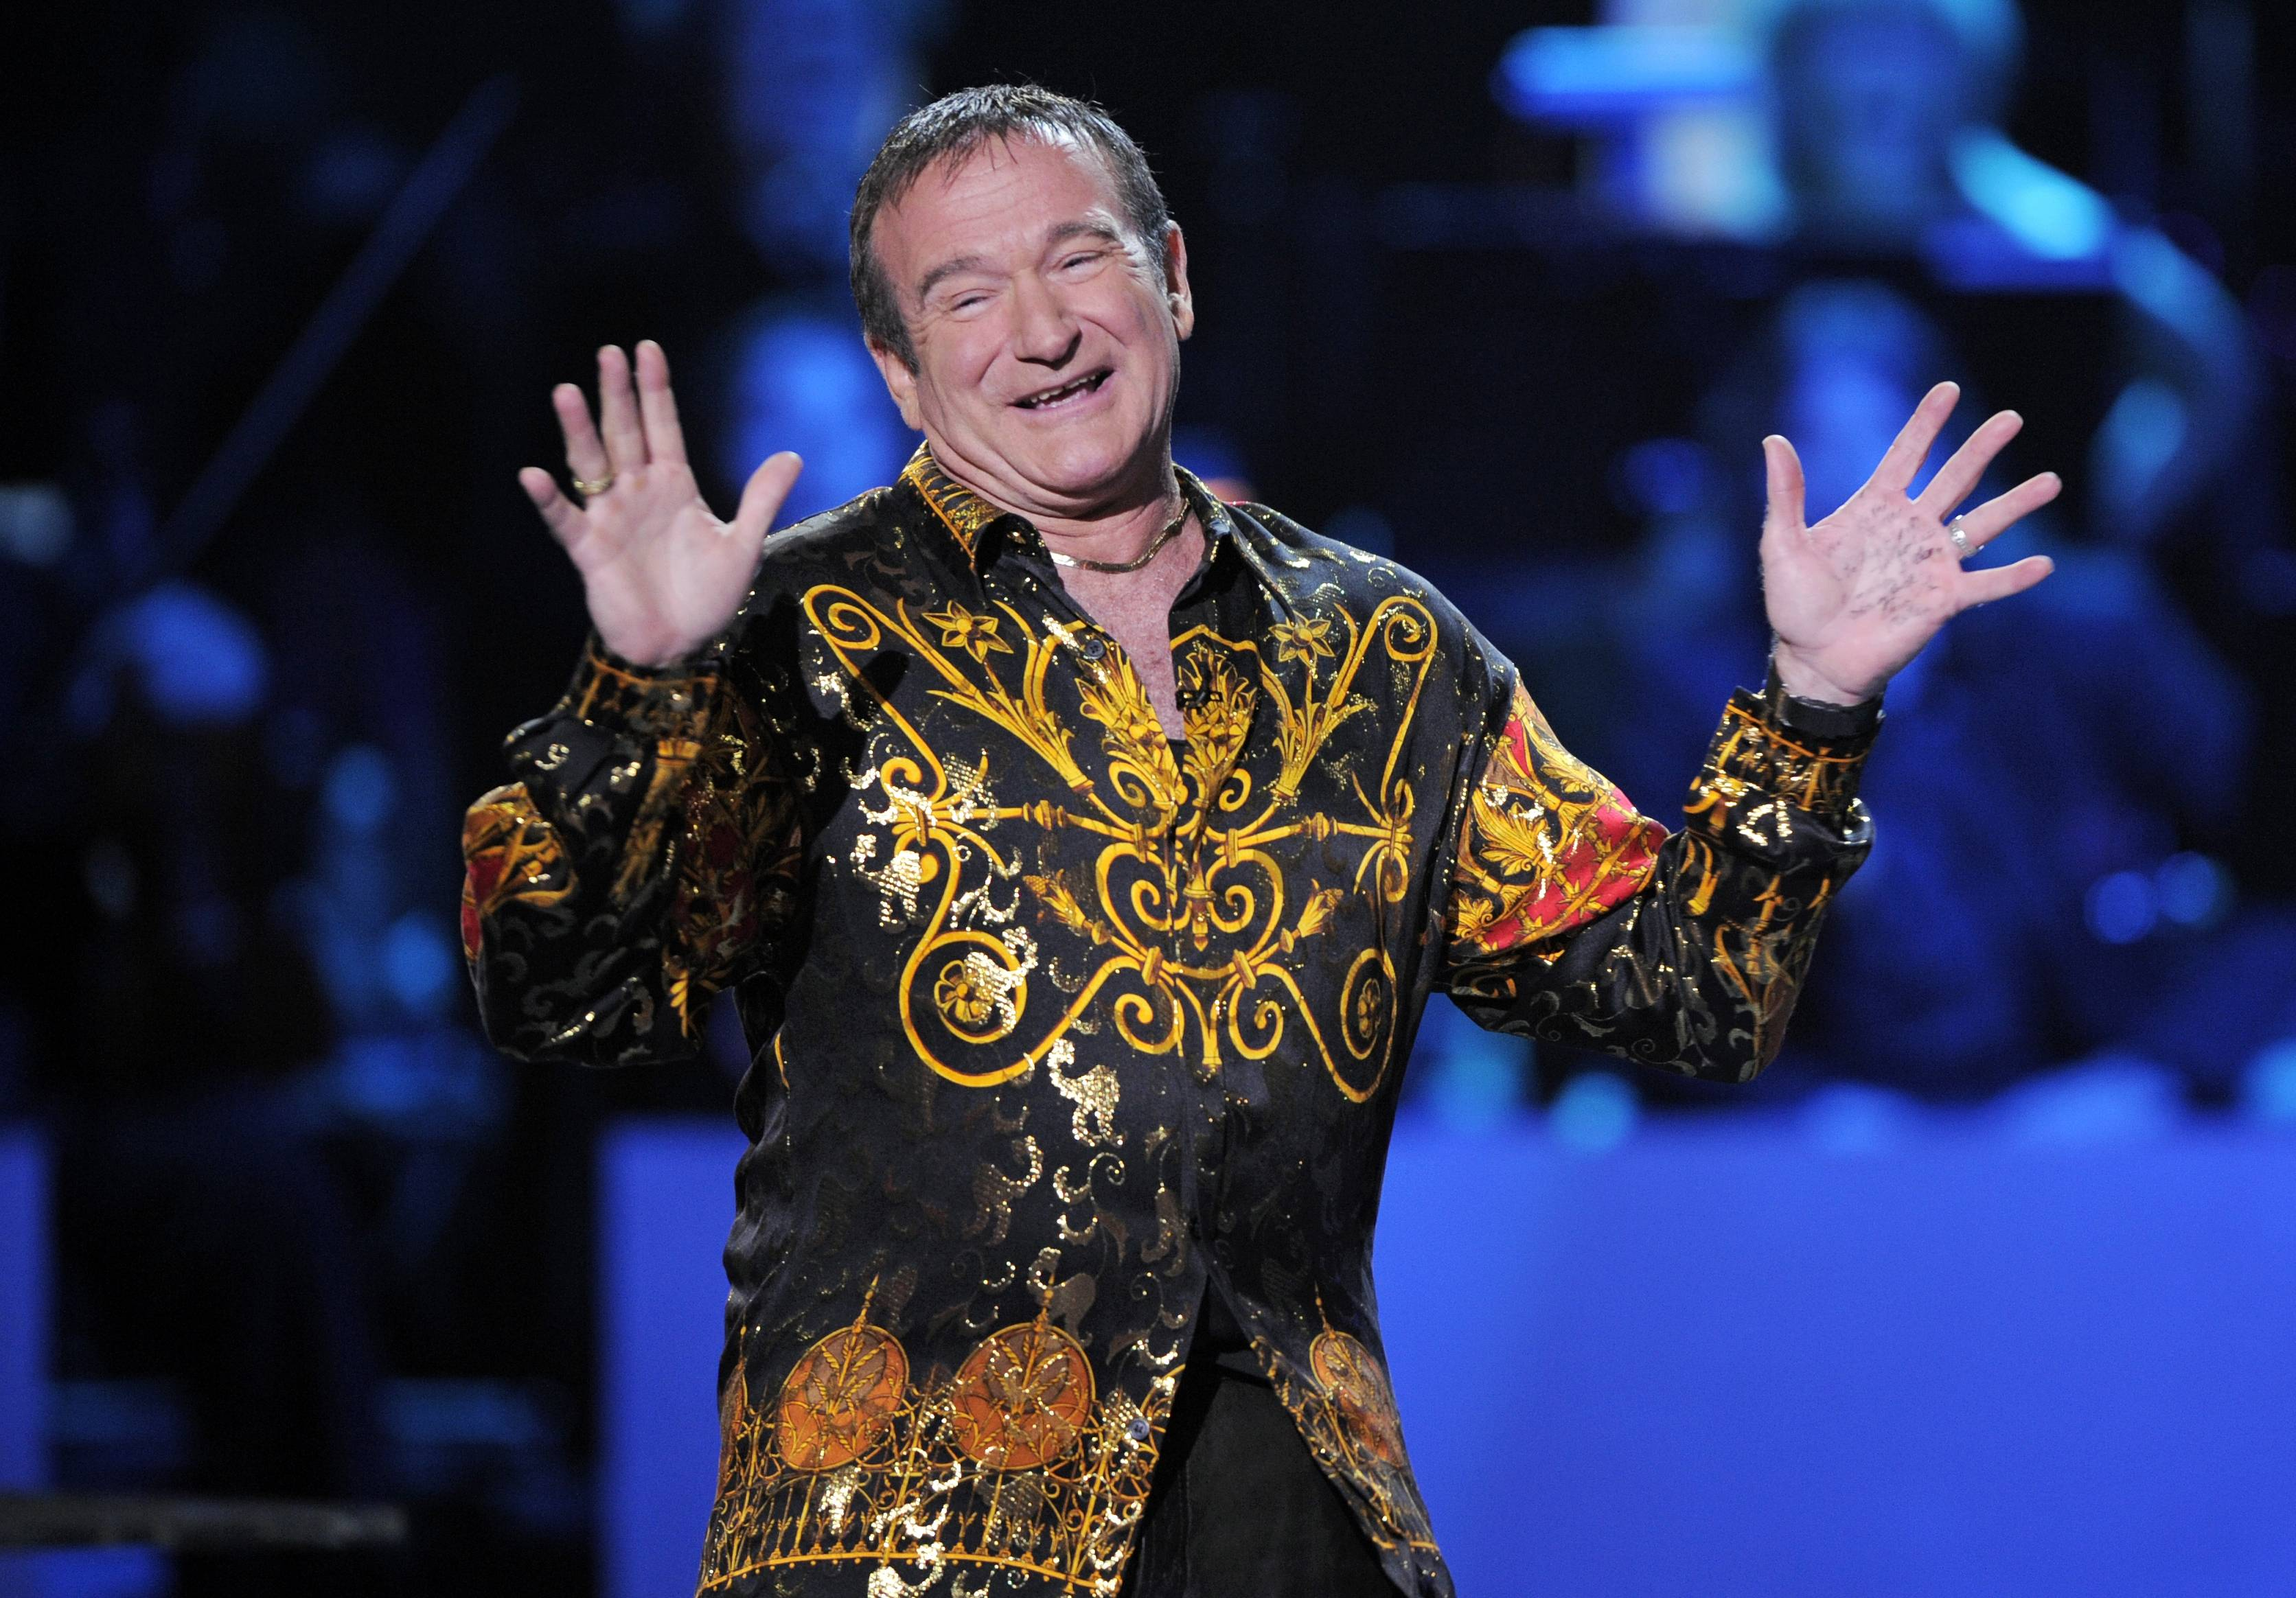 When someone as sparklingly witty as Robin Williams commits suicide, our first reaction is disbelief at the incongruity. Perhaps it shouldn't be. Psychologists believe that some styles of humor can mask a greater susceptibility to depression.